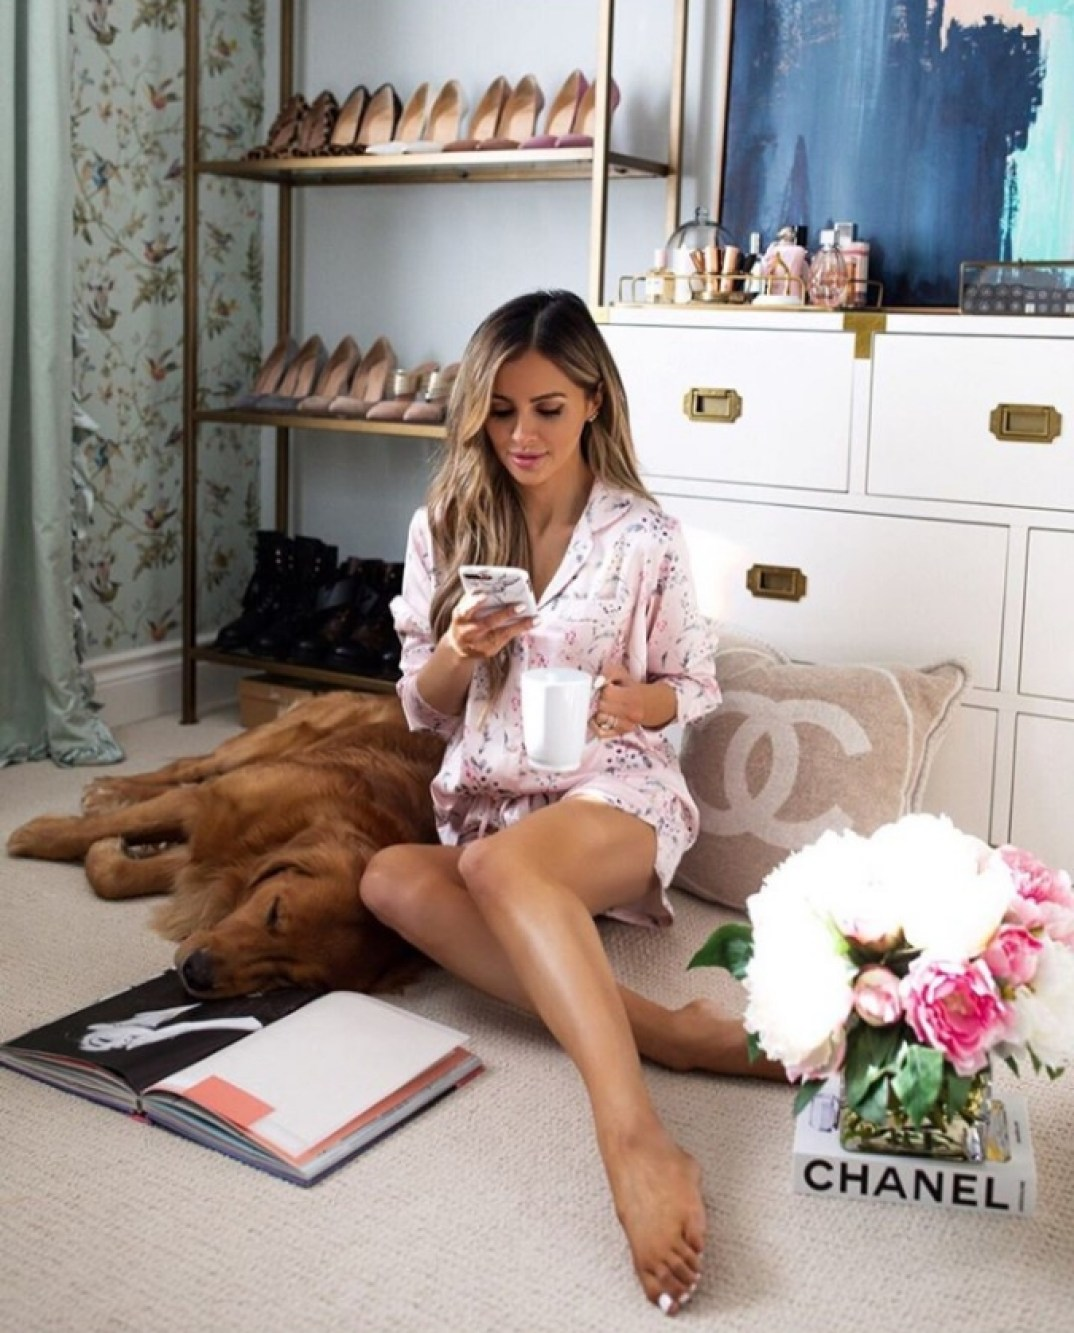 Elegant Loungewear Ideas: How to Look Elegant at Home